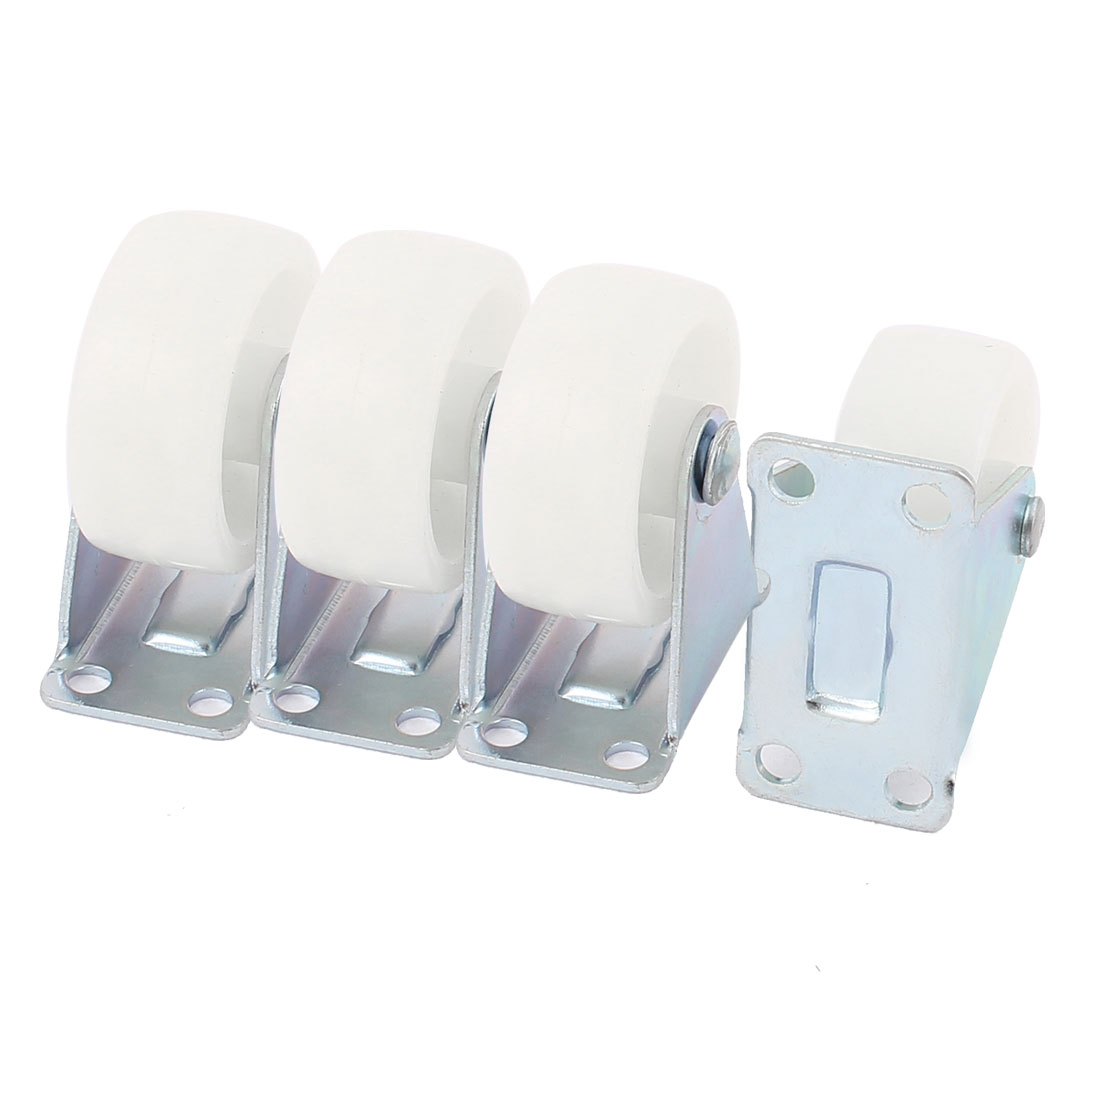 "Office Chair Furniture Trolley Carts 1.5"" PP Wheel Top Plate Fixed Caster 4pcs"